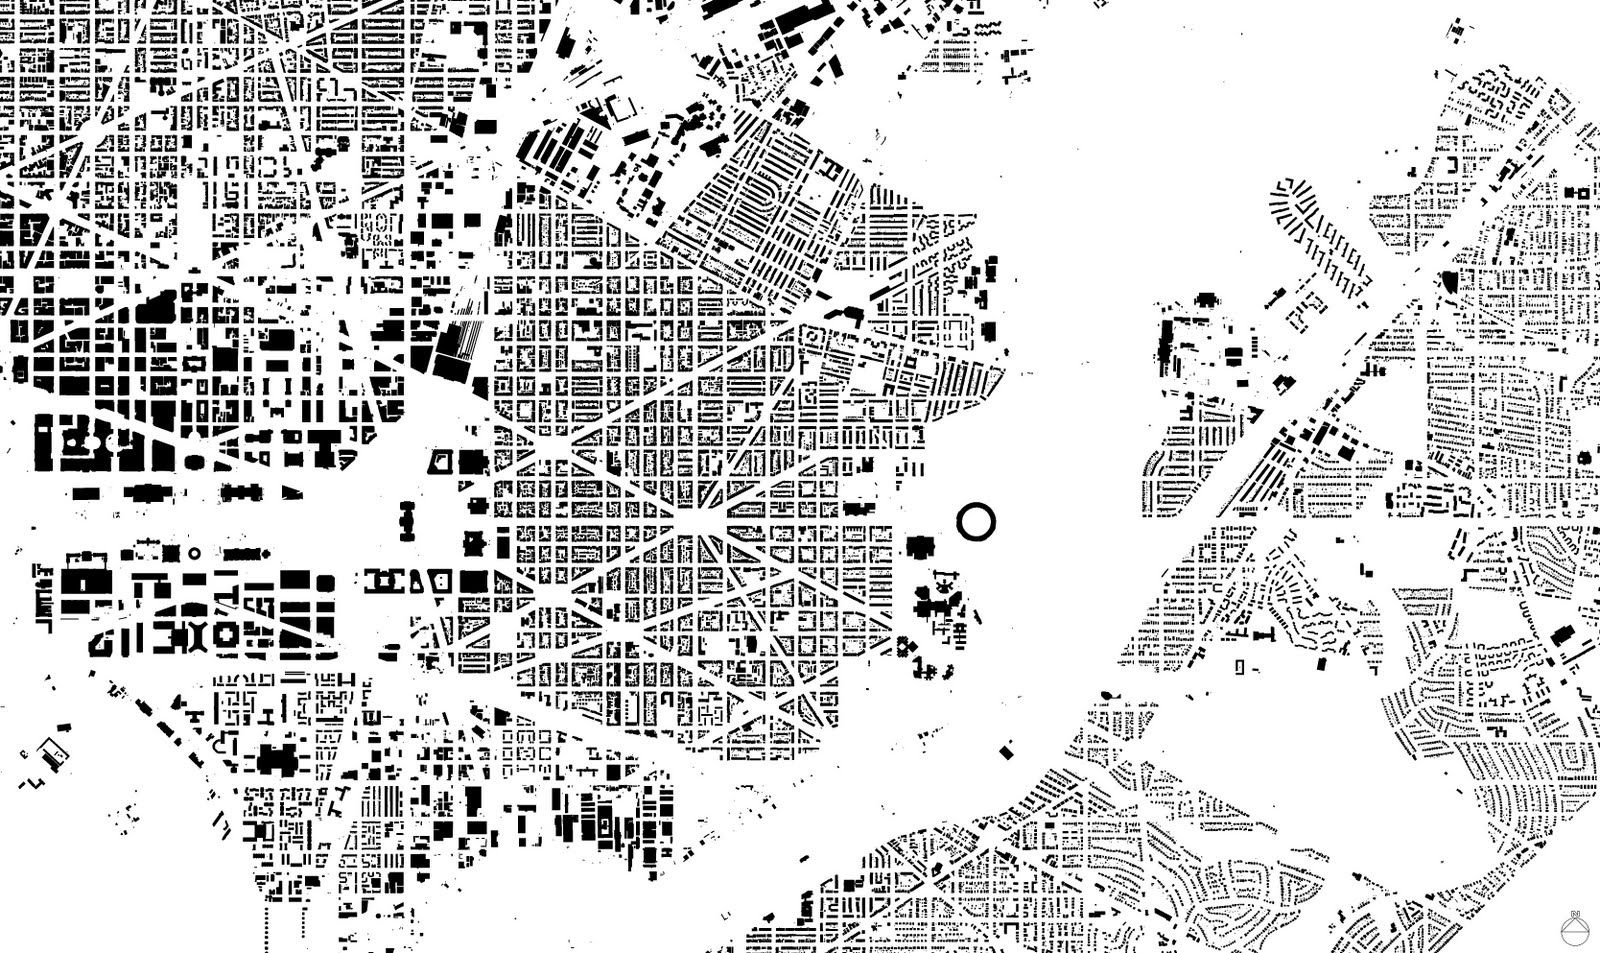 585d55dbe943751958acc1f70ba9b5bd Nolli Map Of Dc on civil war map washington dc, star map washington dc, neighborhood and ward map dc, county map washington dc, usa map washington dc, map showing washington, printable map washington dc, subway map for washington dc, us map showing dc, map ofwashington dc, city map dc, print map washington dc, zip code map nw dc, united states map with dc, map with metro stops dc, simple map washington dc, street map with metro stations washington dc, interactive metro map washington dc, wmata map washington dc, google maps dc,